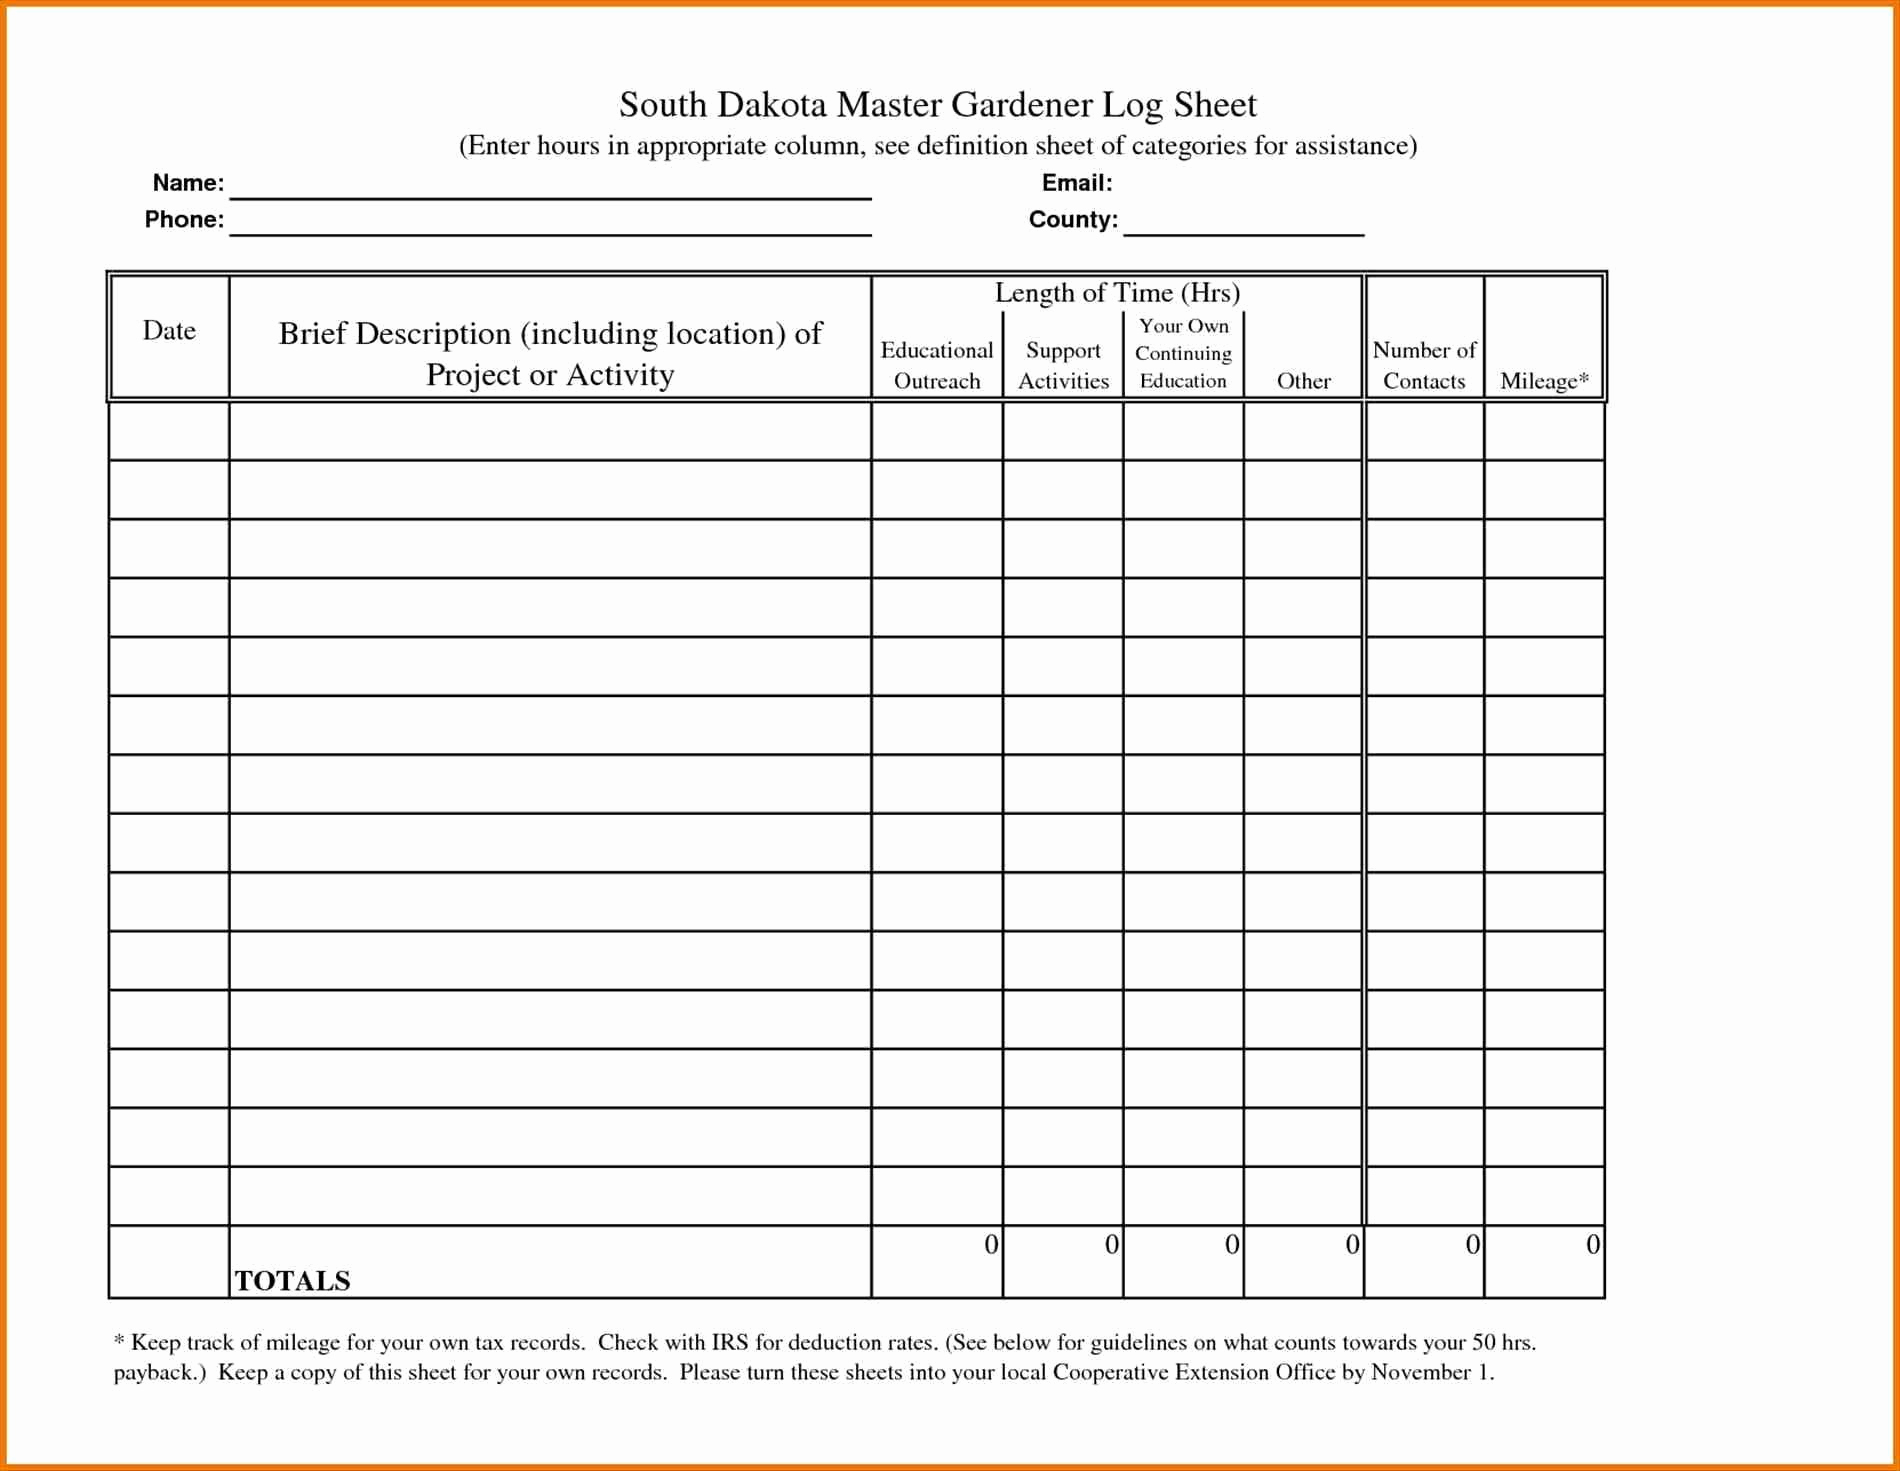 Sign In Sheet Template Doc Beautiful Sign In Sheet Template Doc Sign In Sheet Template Word